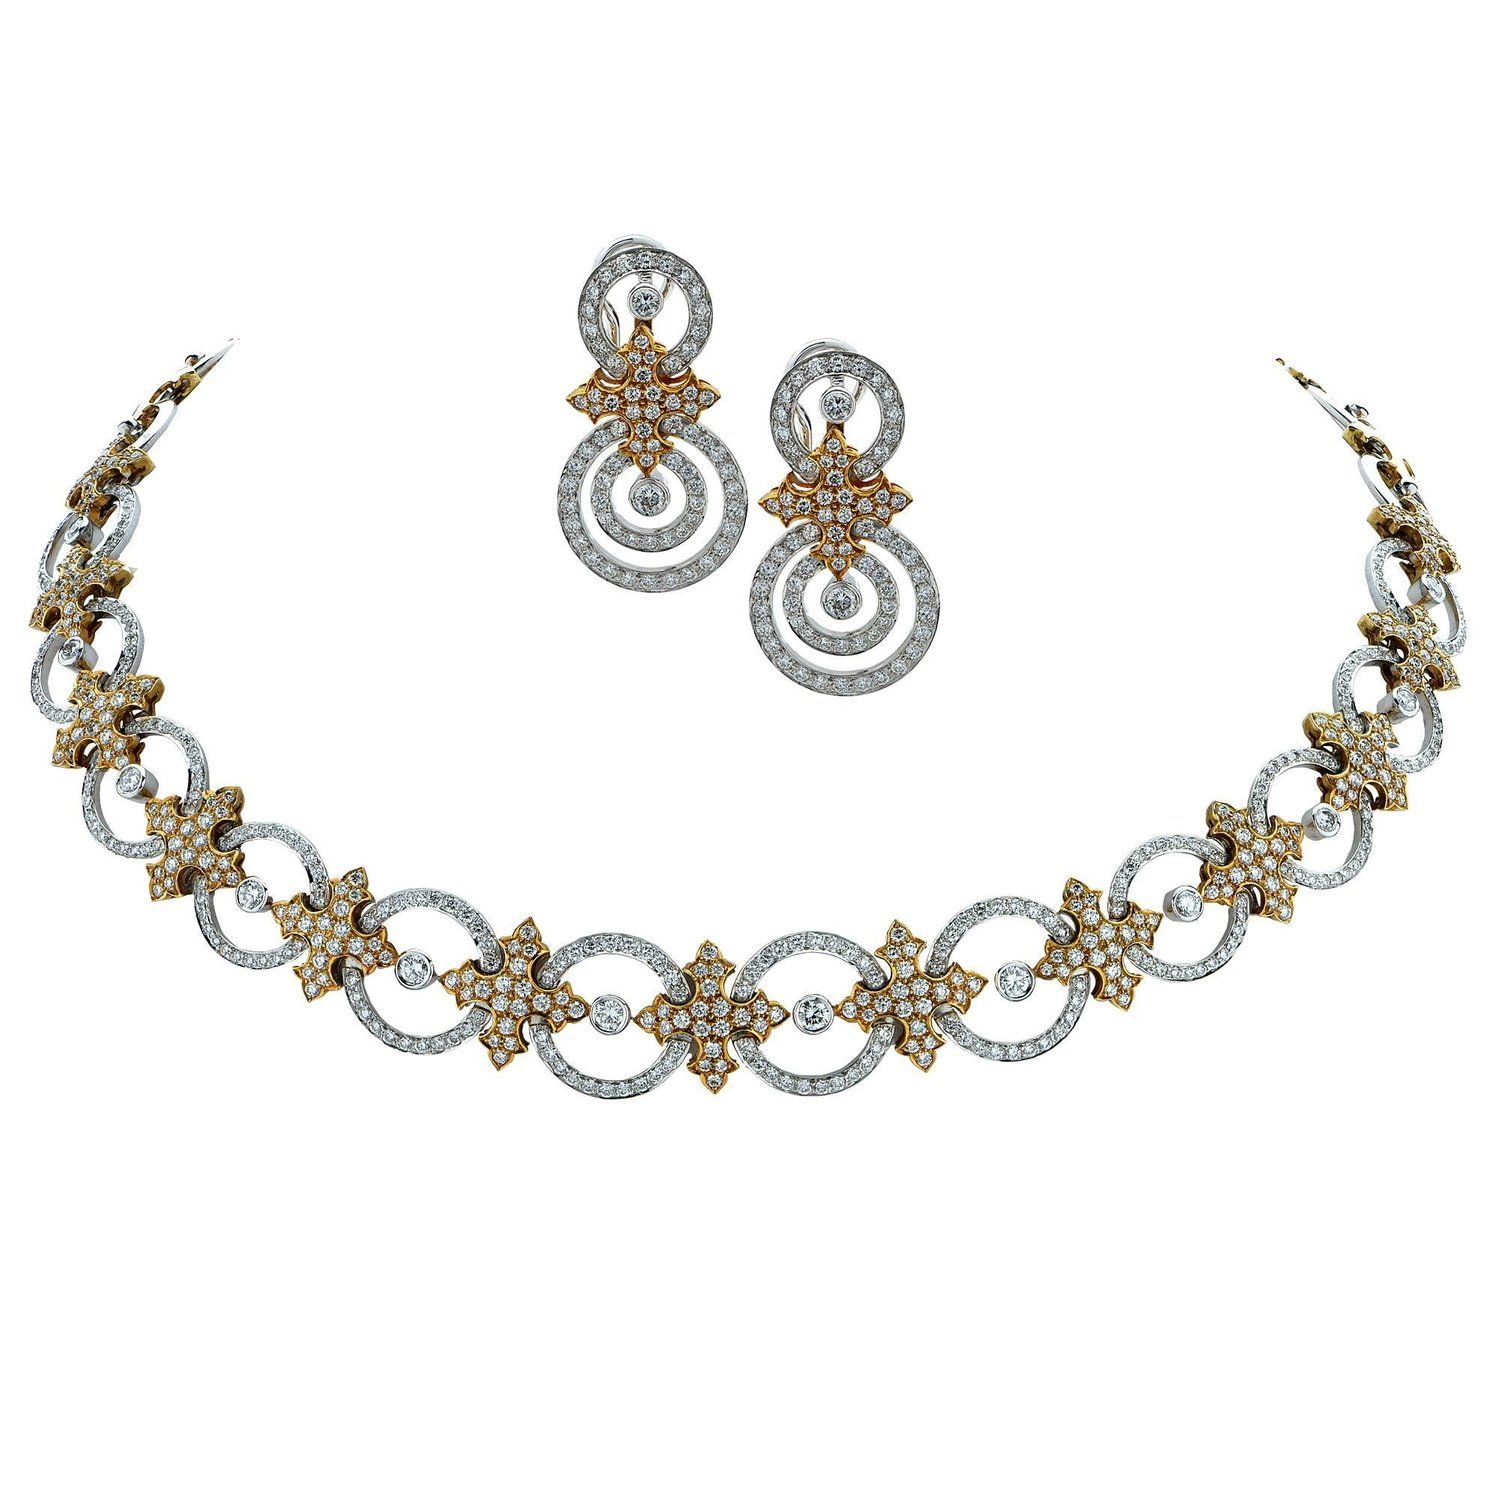 Diamond necklace and earring karat twotone gold set my stdibs